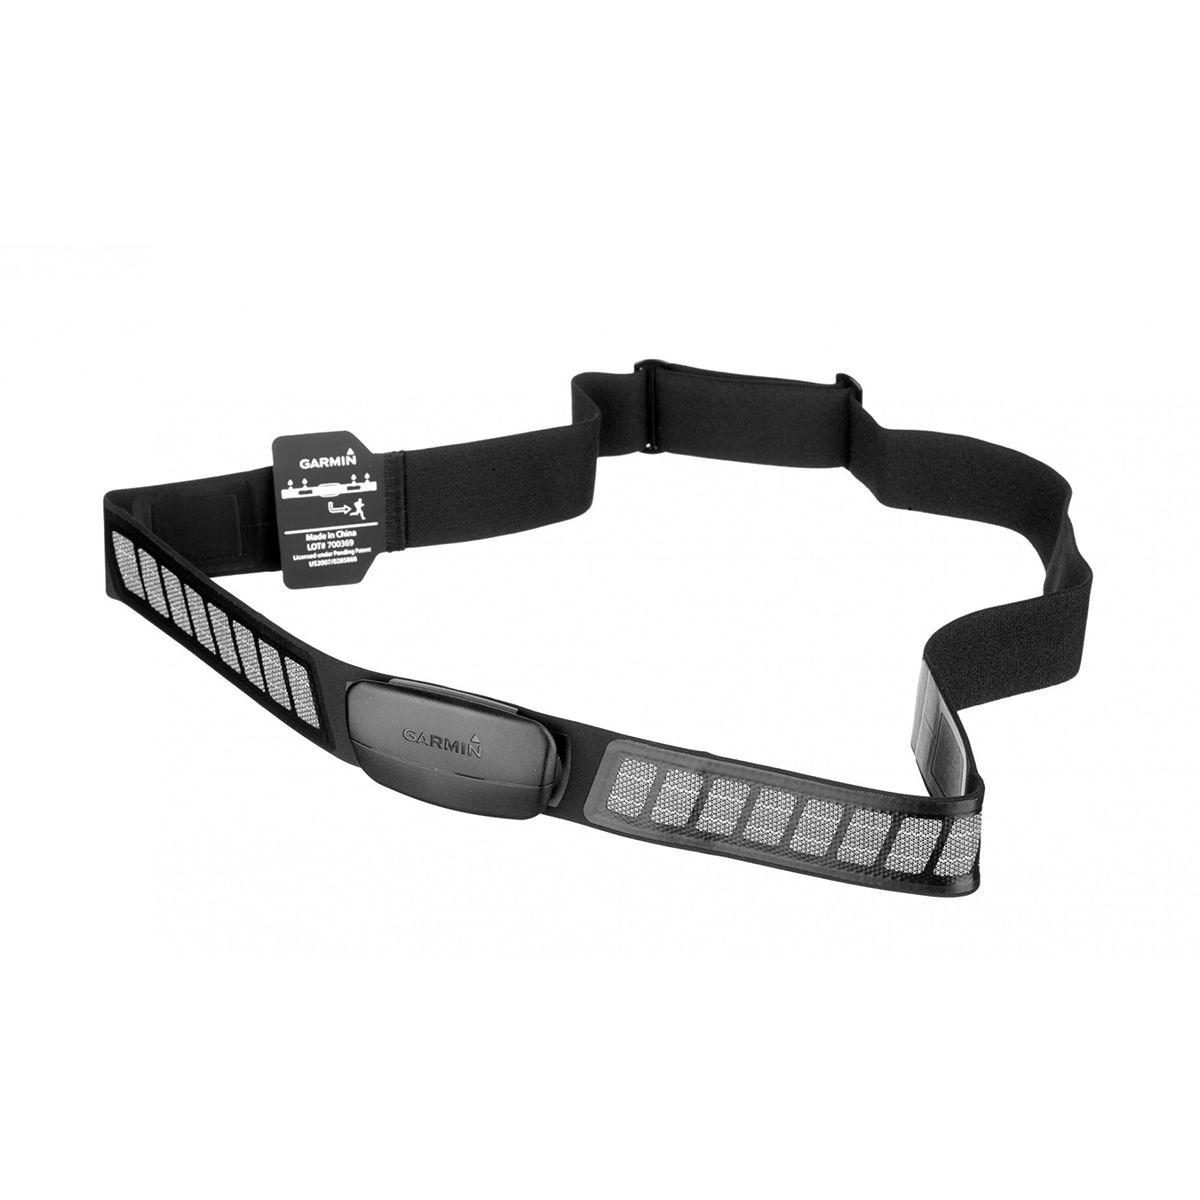 ANT+ Premium heart rate chest strap